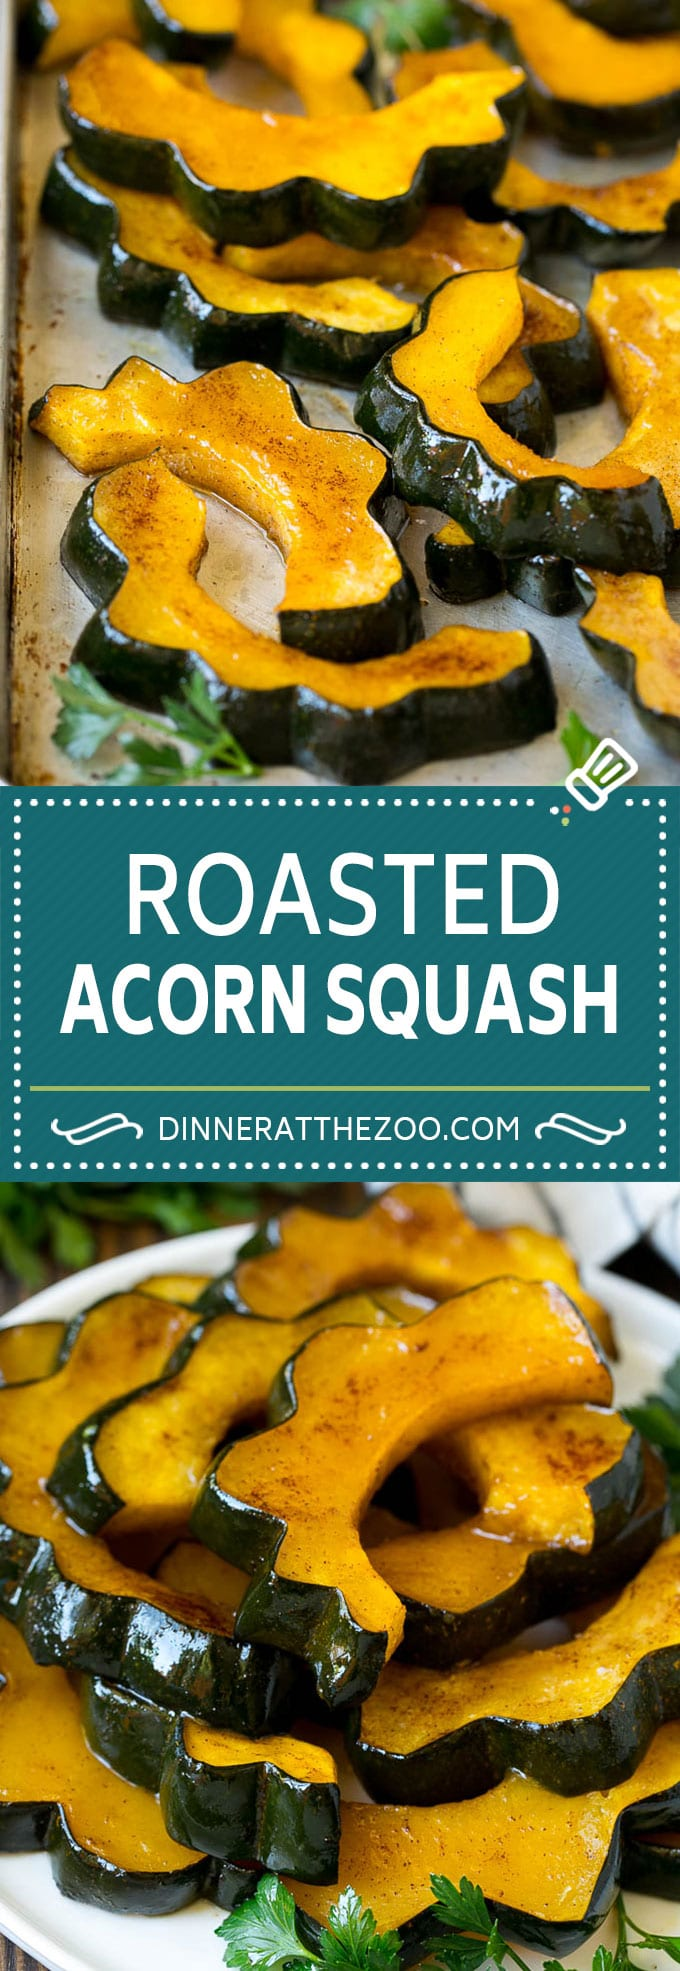 Roasted Acorn Squash | Acorn Squash Recipe #squash #winter #sidedish #dinner #dinneratthezoo